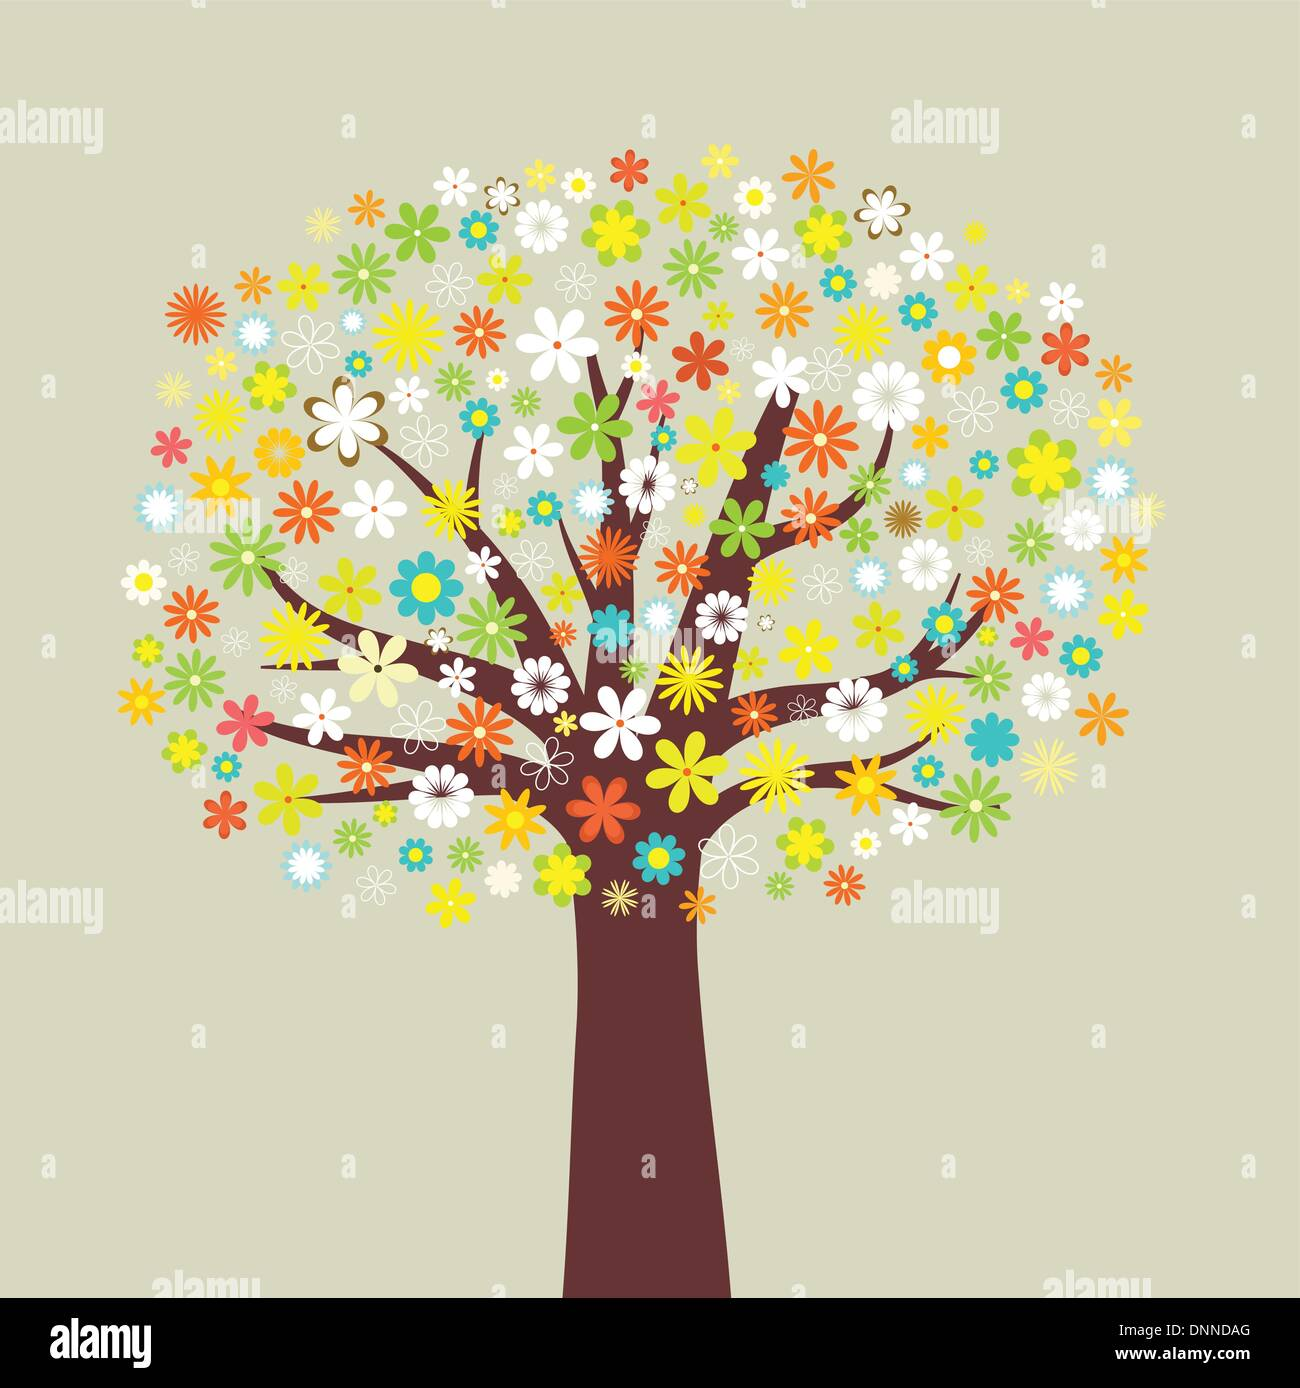 Illustration of a tree of many flowers - Stock Image